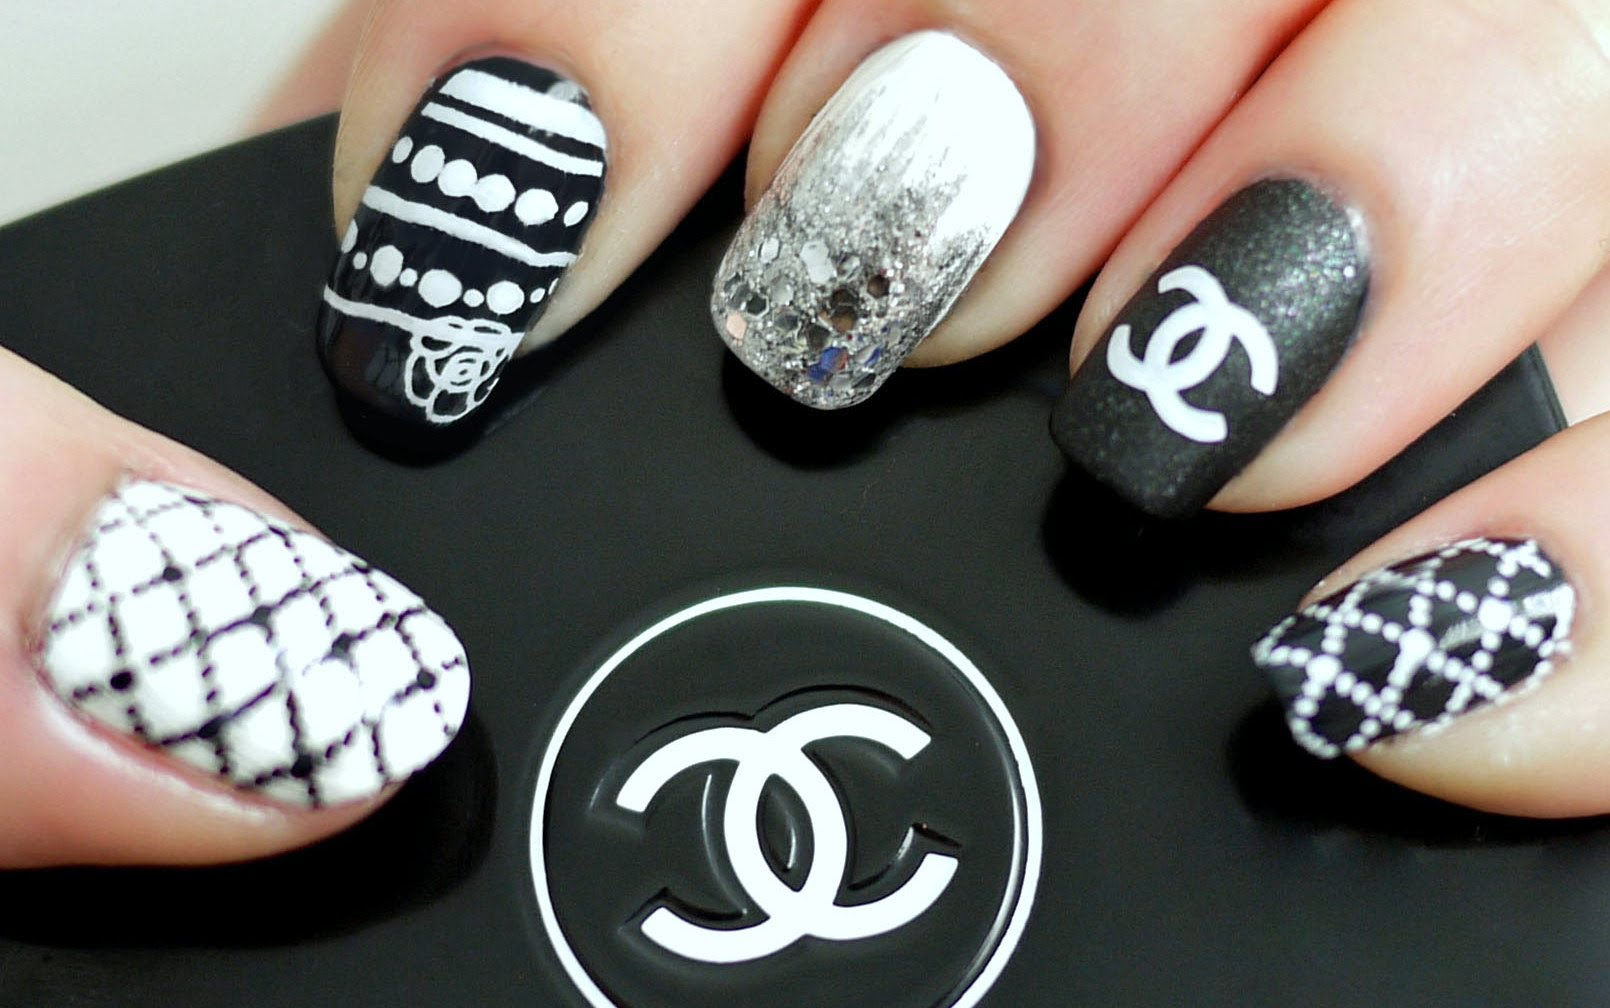 Black Amp White Chanel Inspired Nail Tutorial Konad Stamping Best Nail Art Designs Chanel Nails Nails